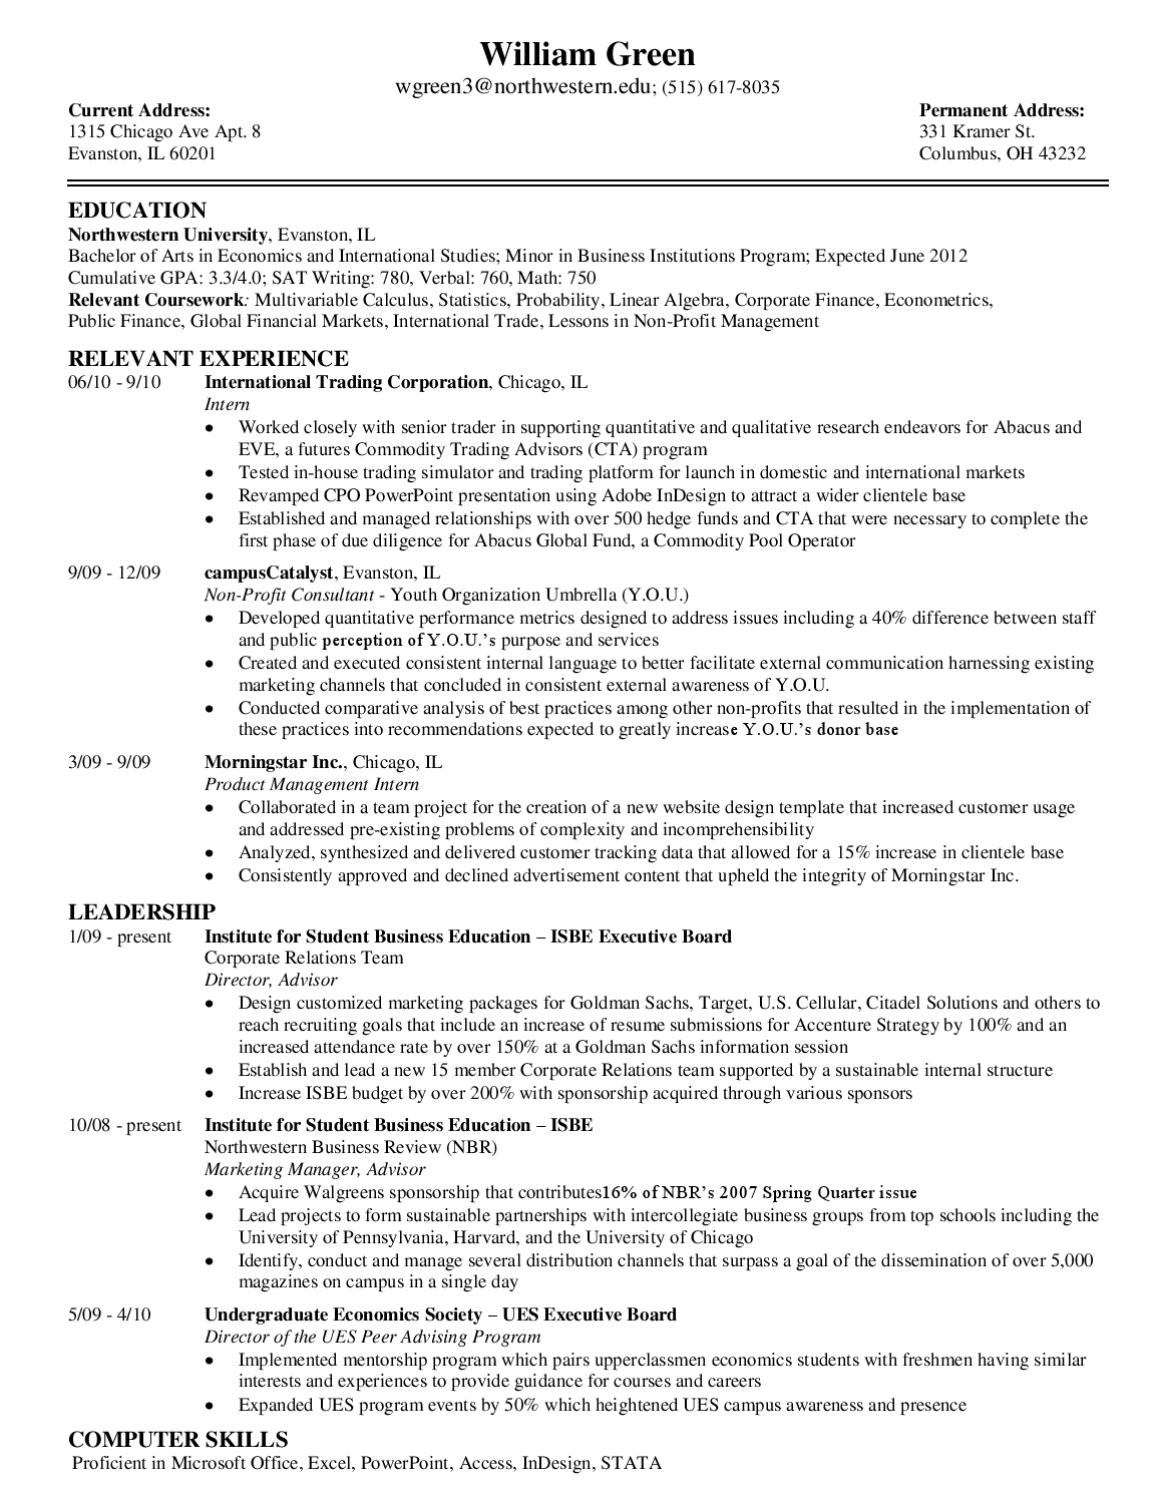 consulting resume samplenorthwestern university career, Presentation templates